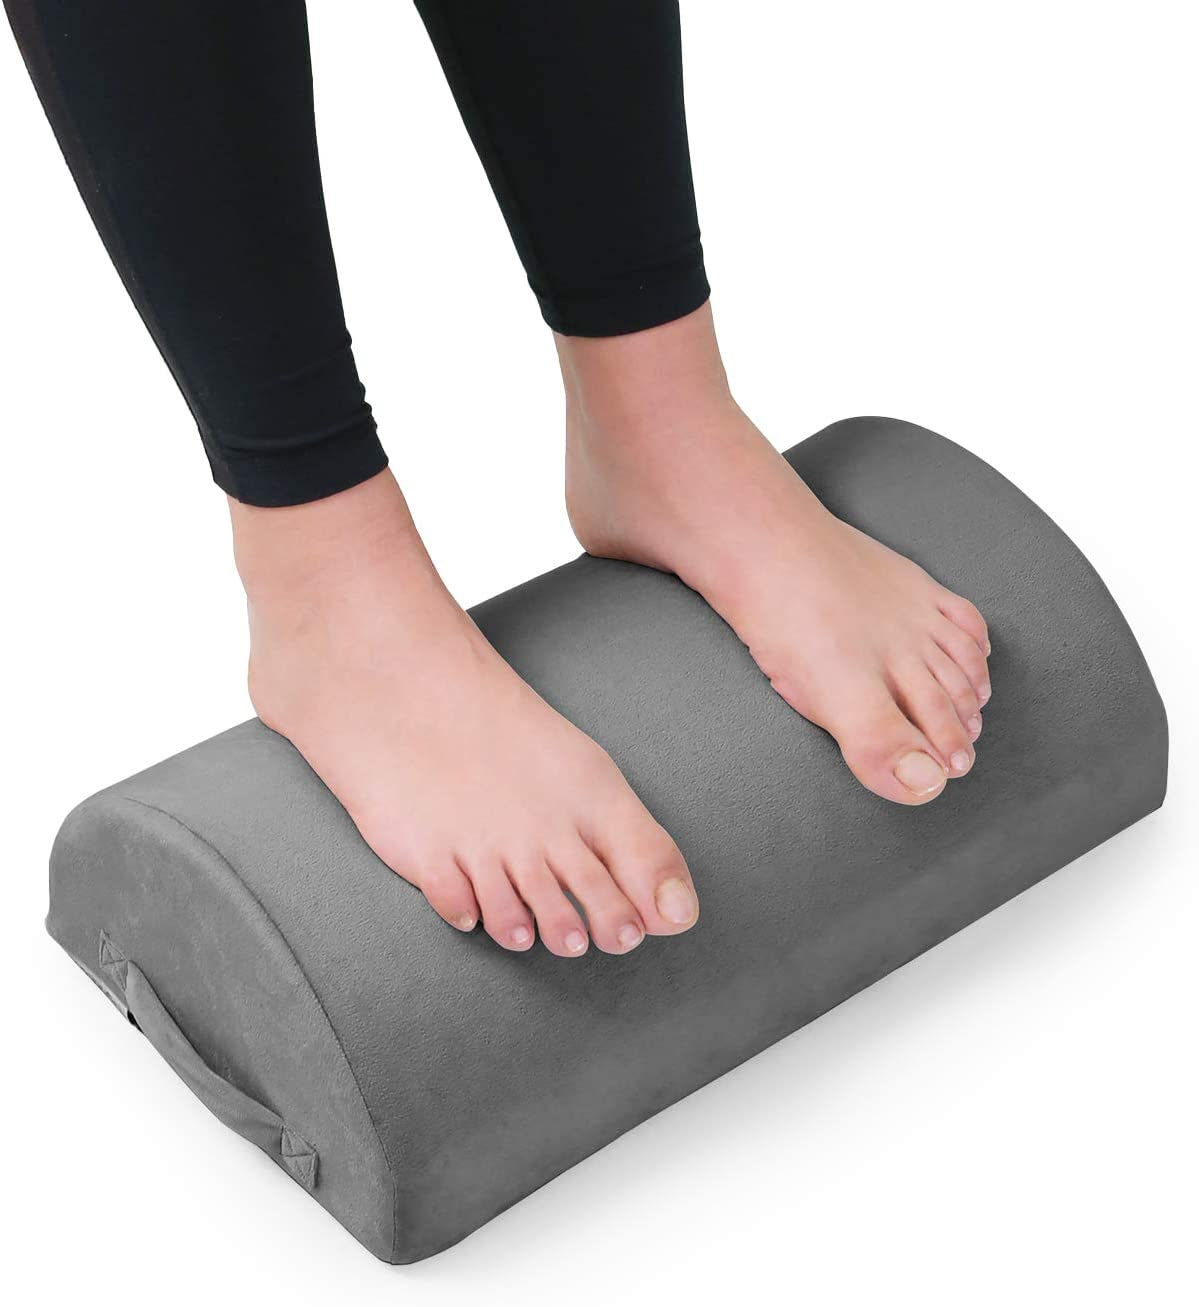 Foot Rest, LightEase Ergonomic Footrest Under Desk Cushion for Work from Home, Office, Gaming, Airplane, Comfortable Memory Foam Foot Pillow with Handle, Washable Cover and Non-Slip Bottom